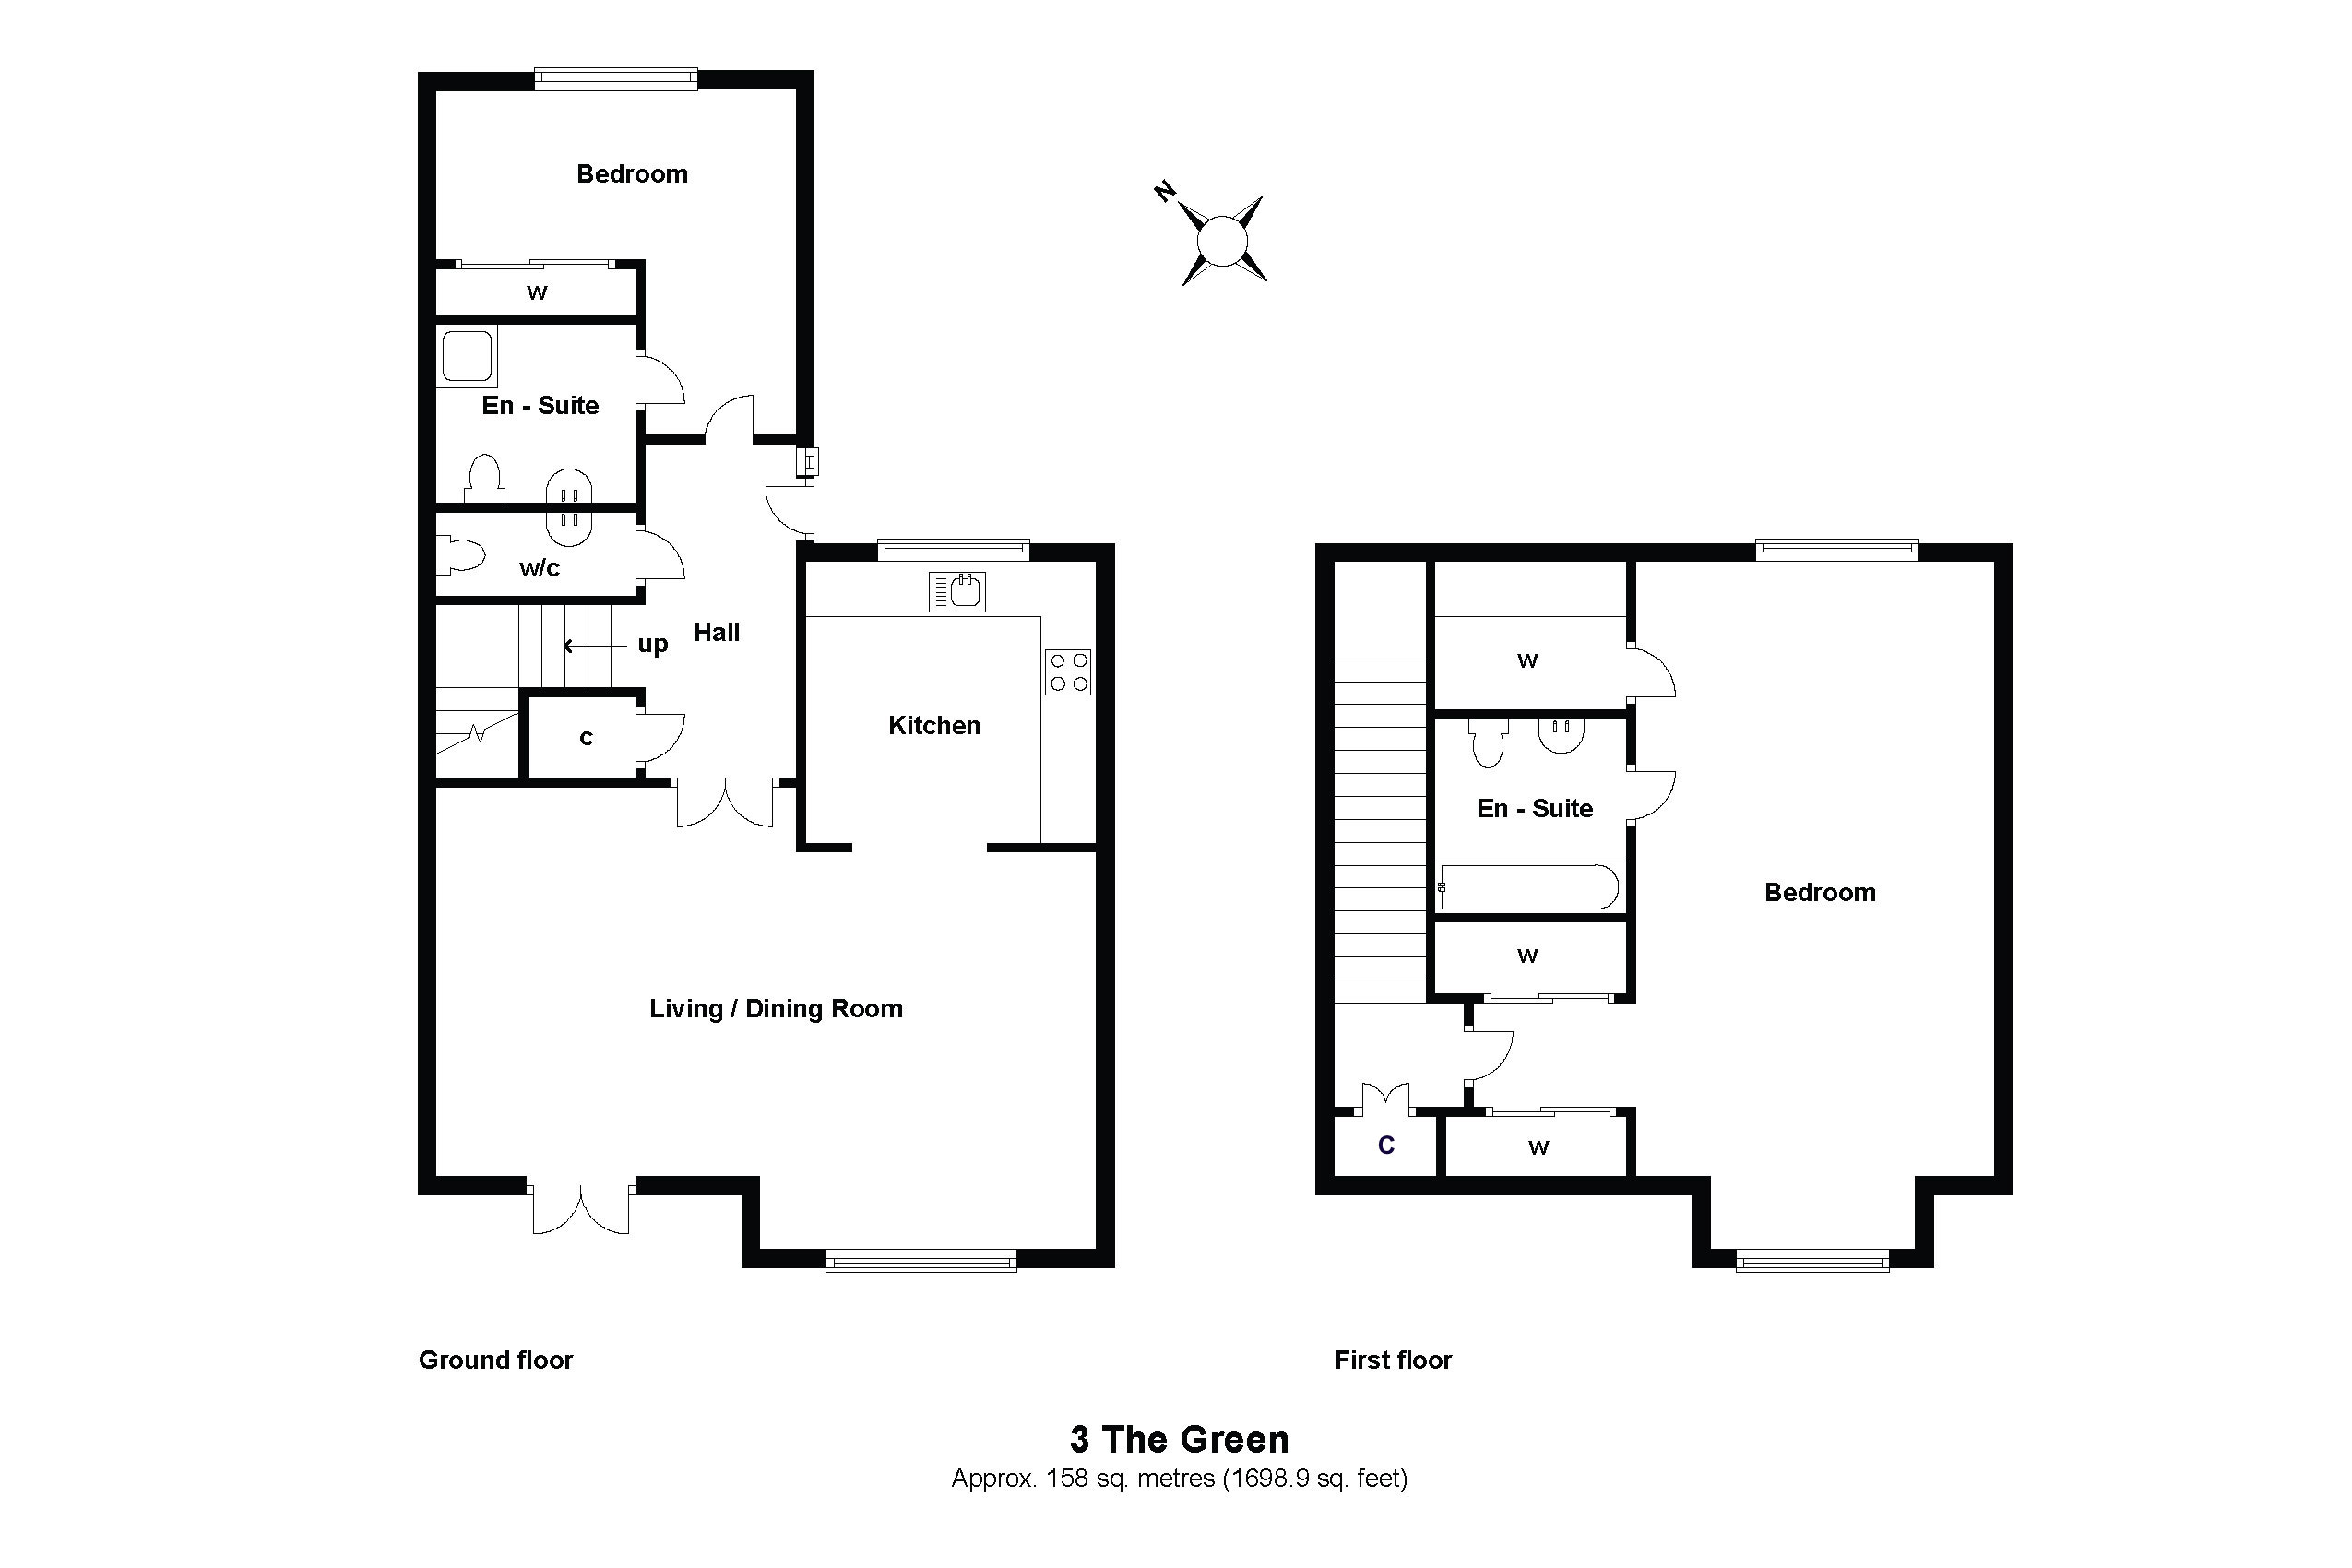 3 The Green Floorplan